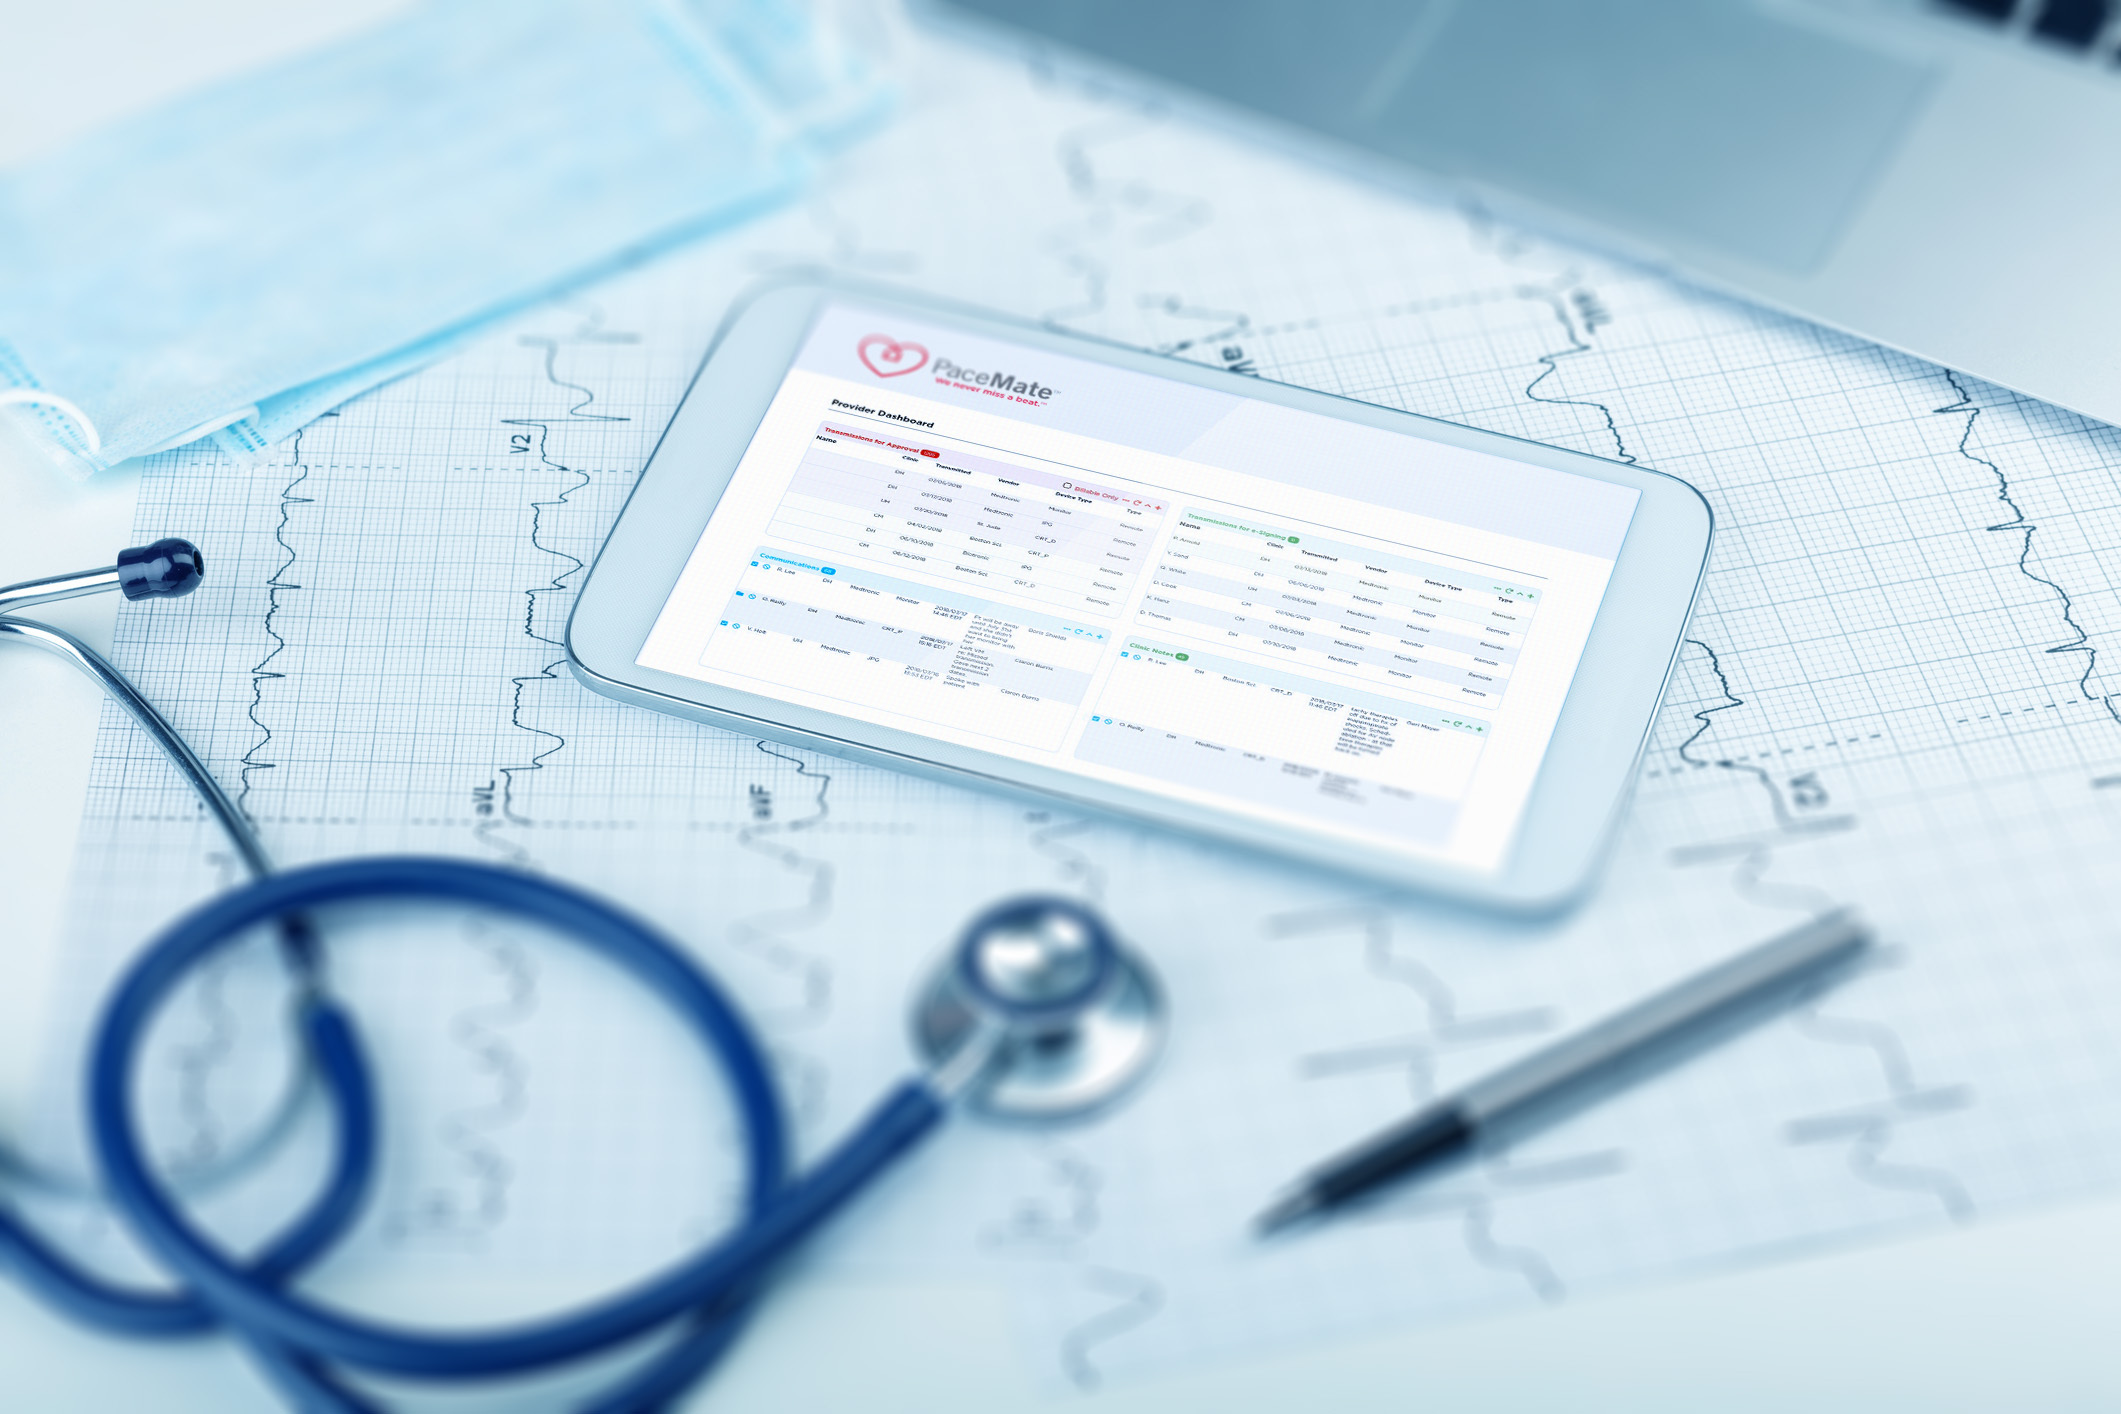 Device Clinic Management